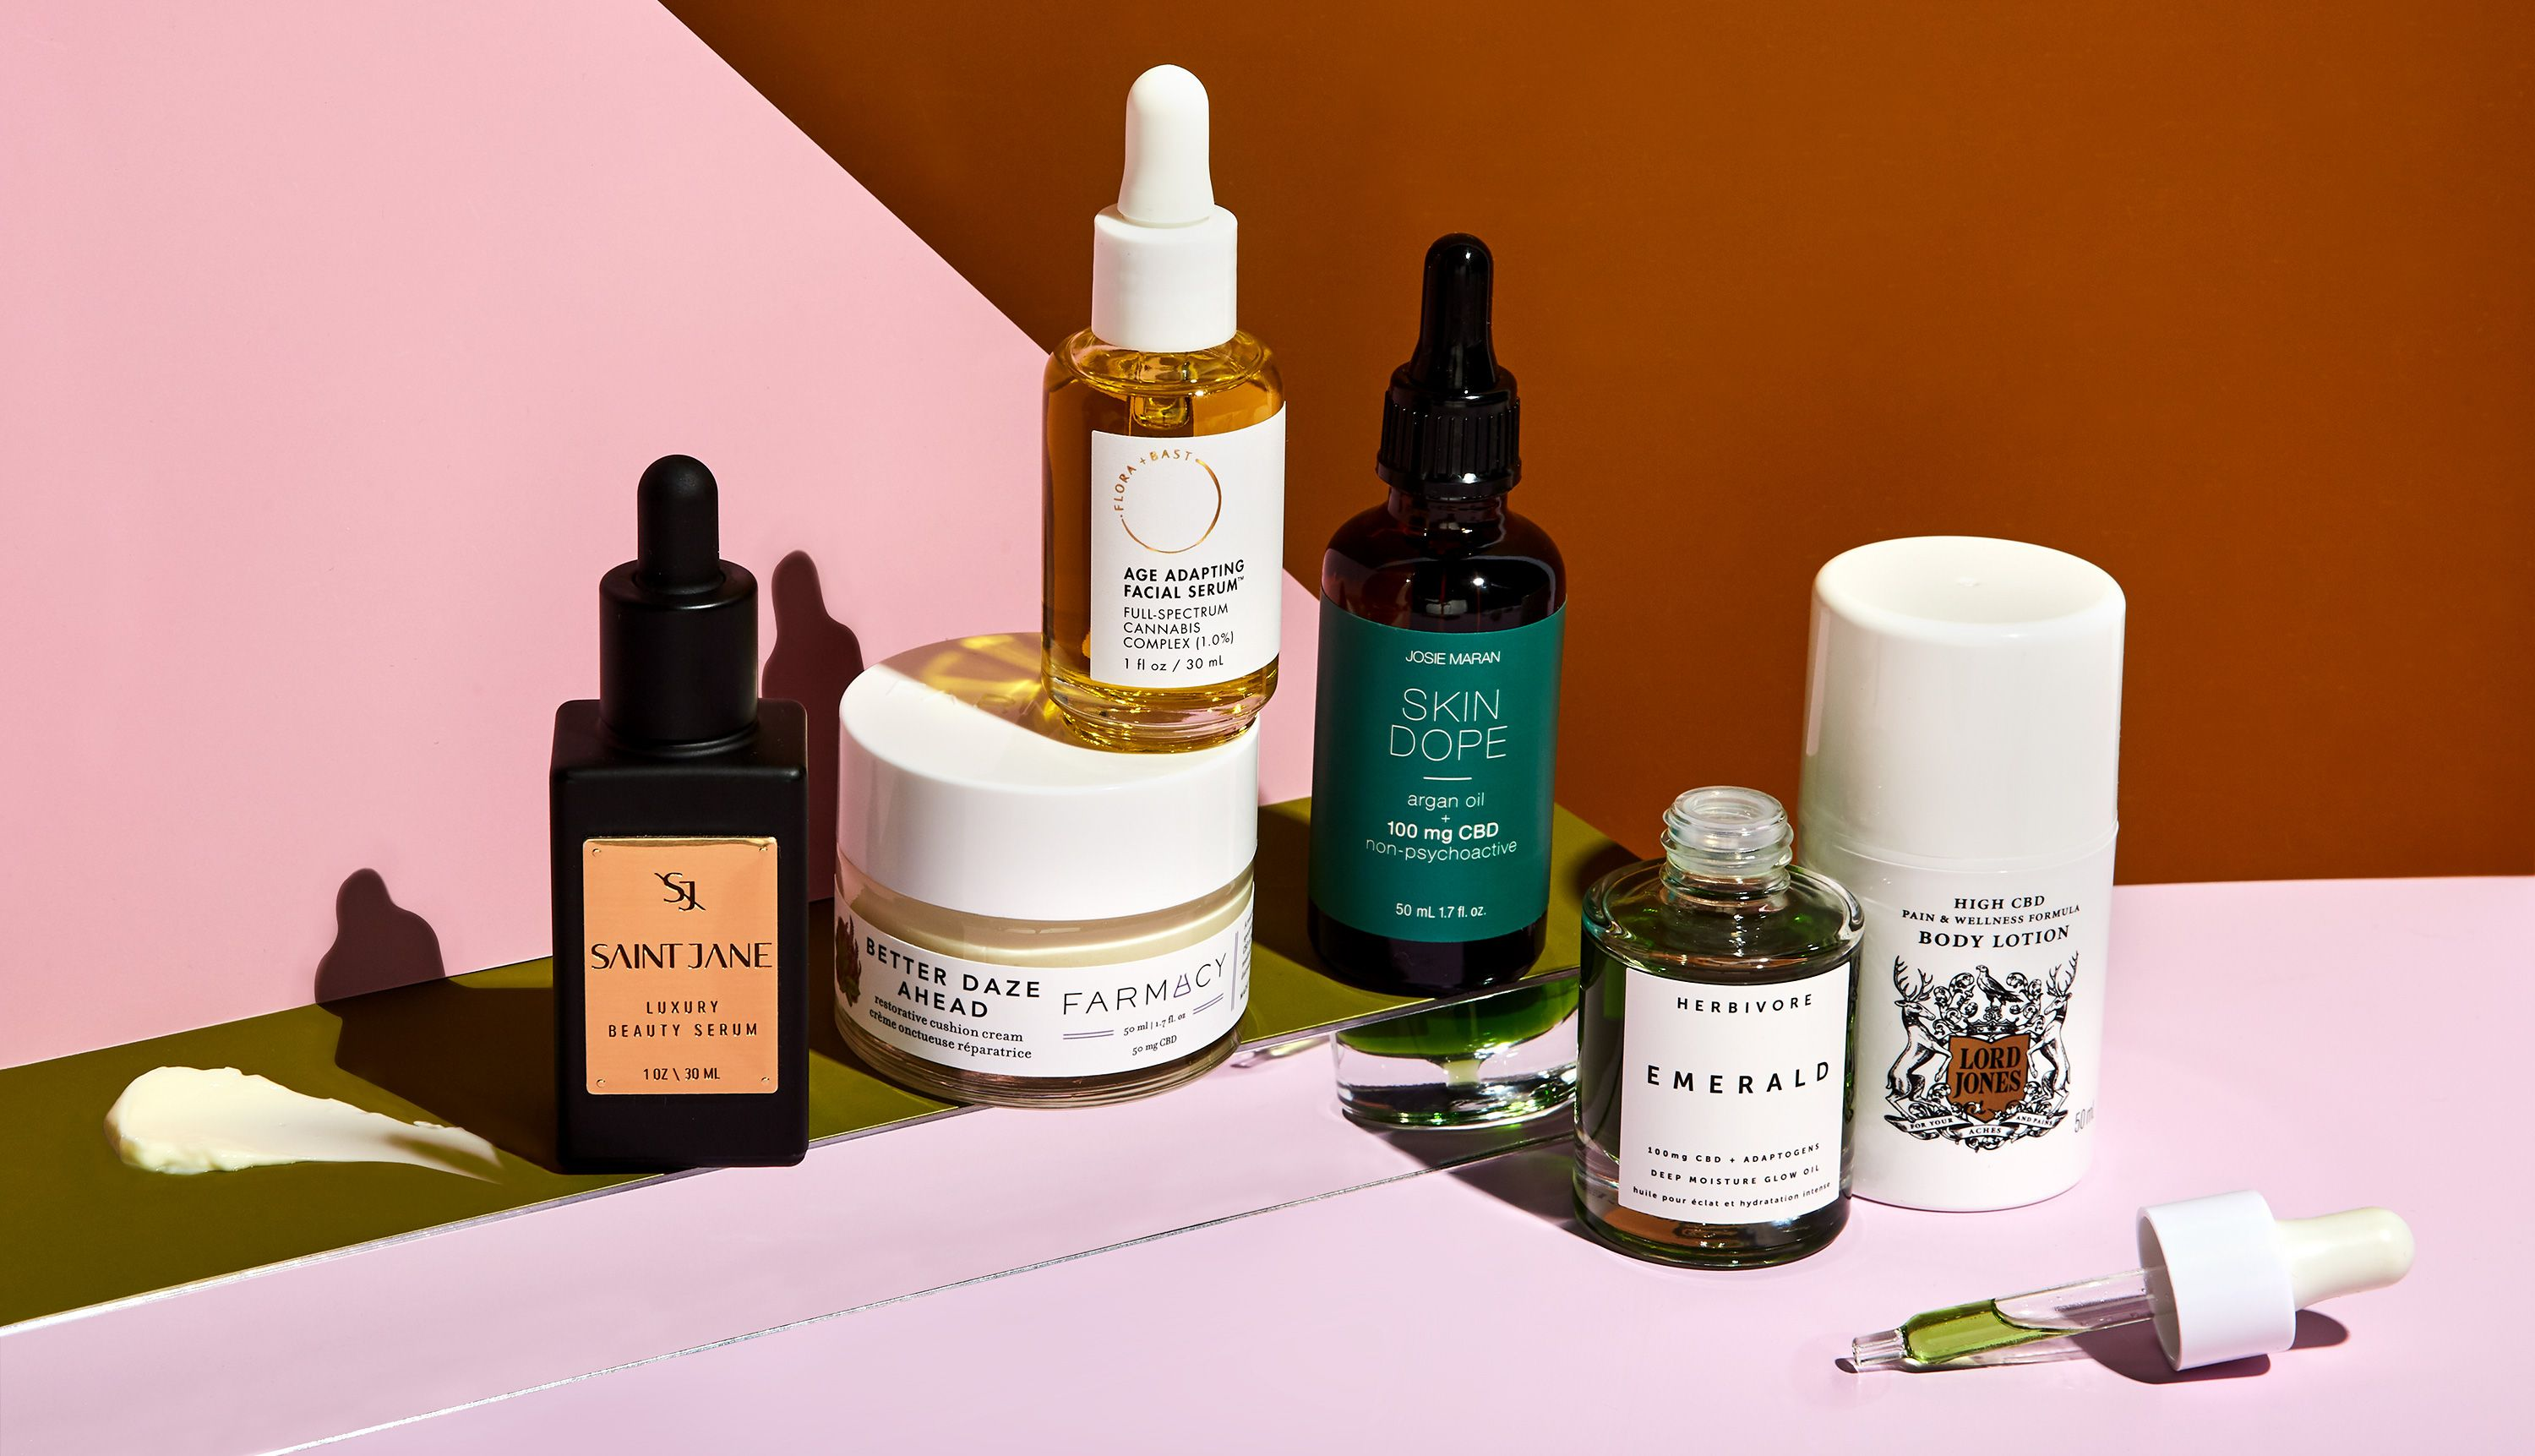 CBD Beauty Products at Sephora - What CBD You Can Buy at Sephora